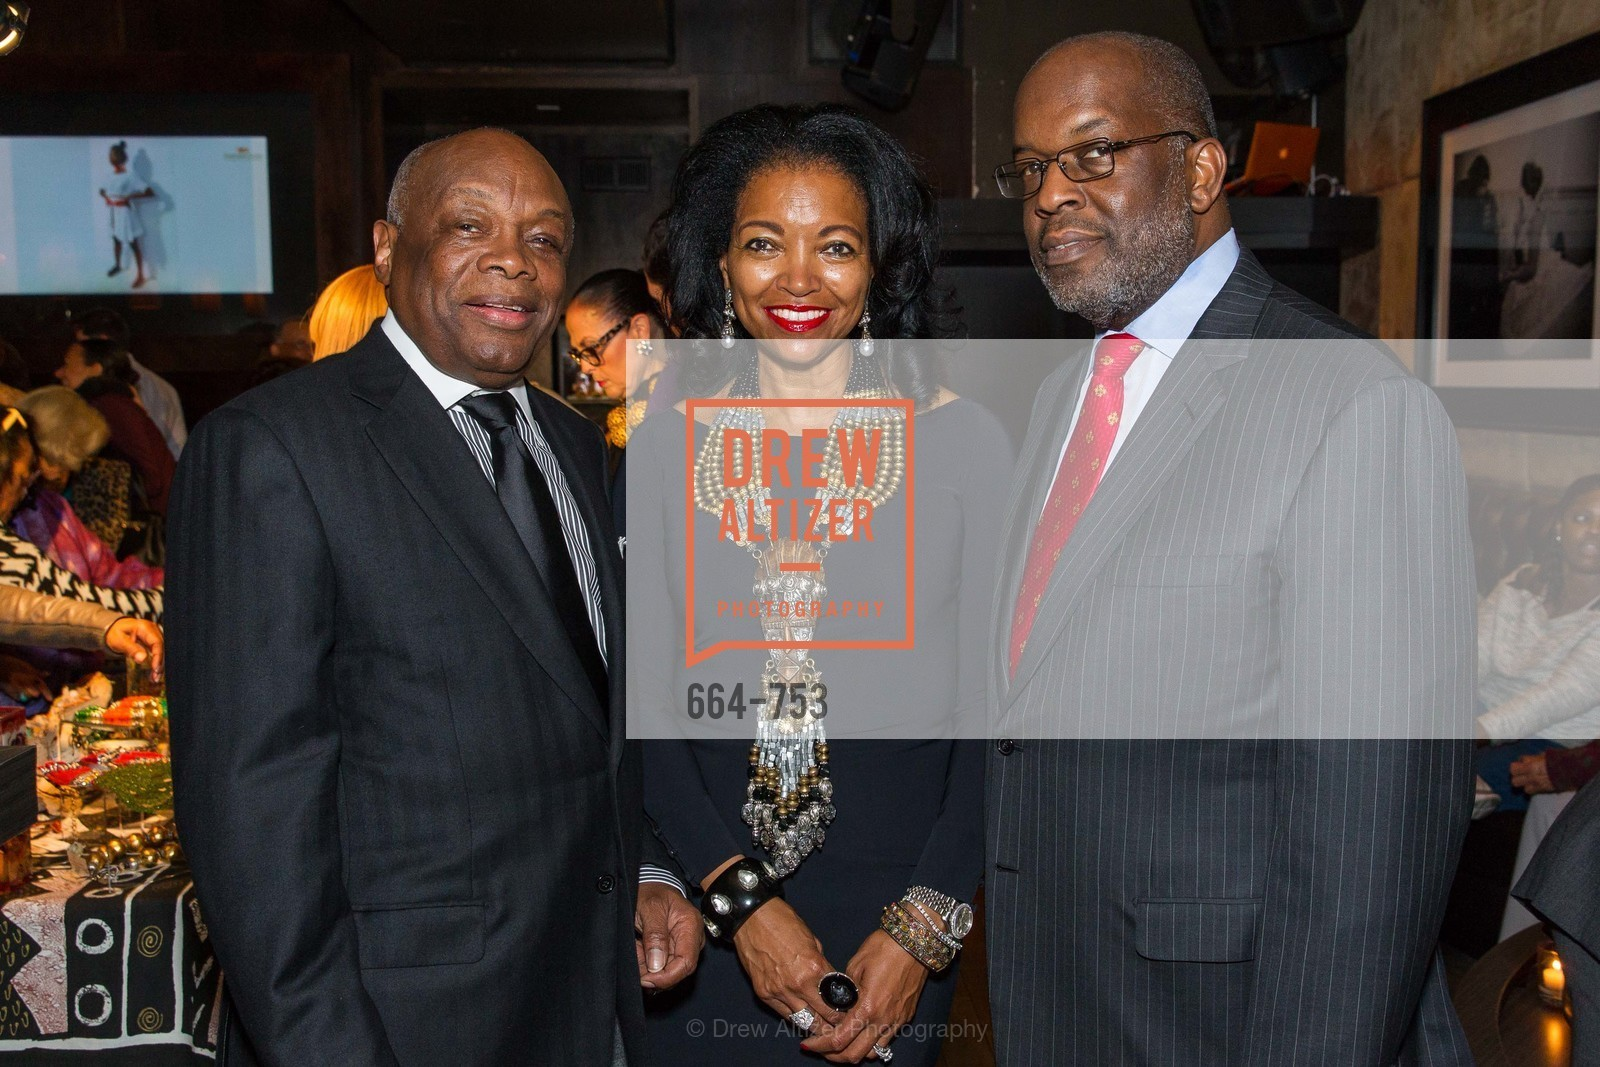 Willie Brown, Denise Bradley Tyson, Bernard Tyson, INSPIRED LUXE Launch Party Hosted by Denise Bradley Tyson, US, May 28th, 2015,Drew Altizer, Drew Altizer Photography, full-service agency, private events, San Francisco photographer, photographer california